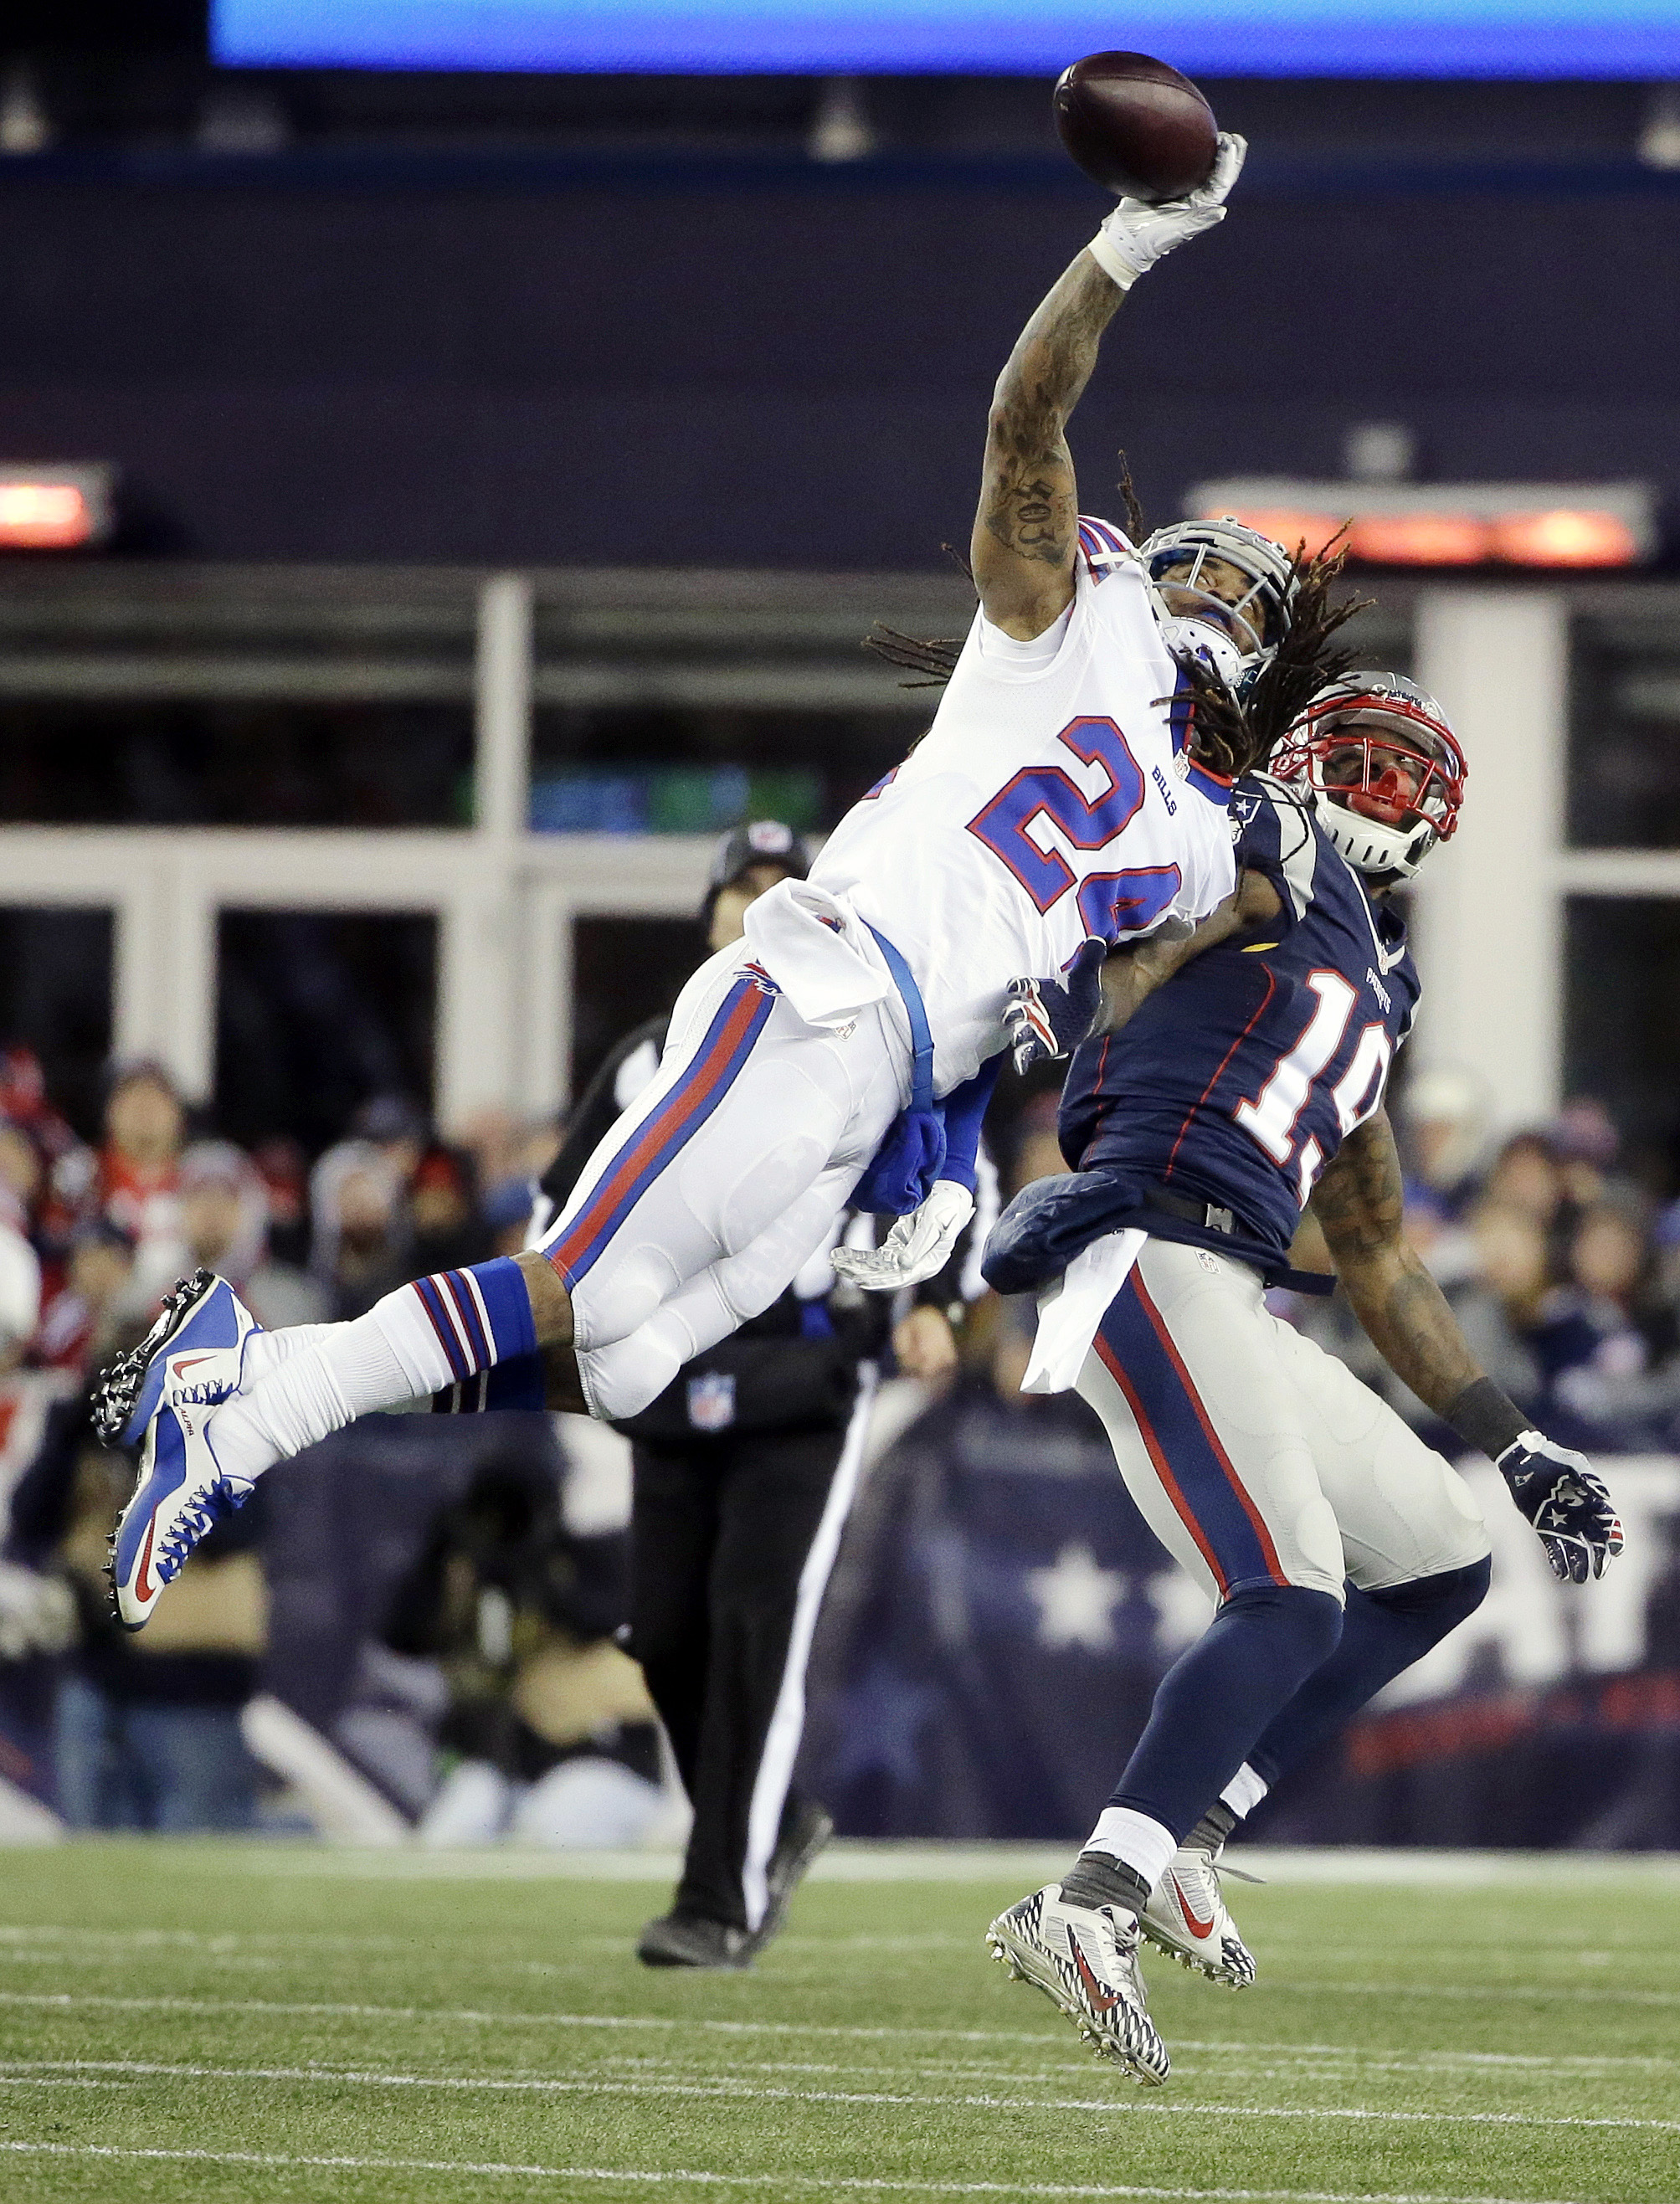 Buffalo Bills defensive back Stephon Gilmore (24) breaks up a pass intended for New England Patriots wide receiver Brandon LaFell (19) in the second half of an NFL football game, Monday, Nov. 23, 2015, in Foxborough, Mass. (AP Photo/Steven Senne)